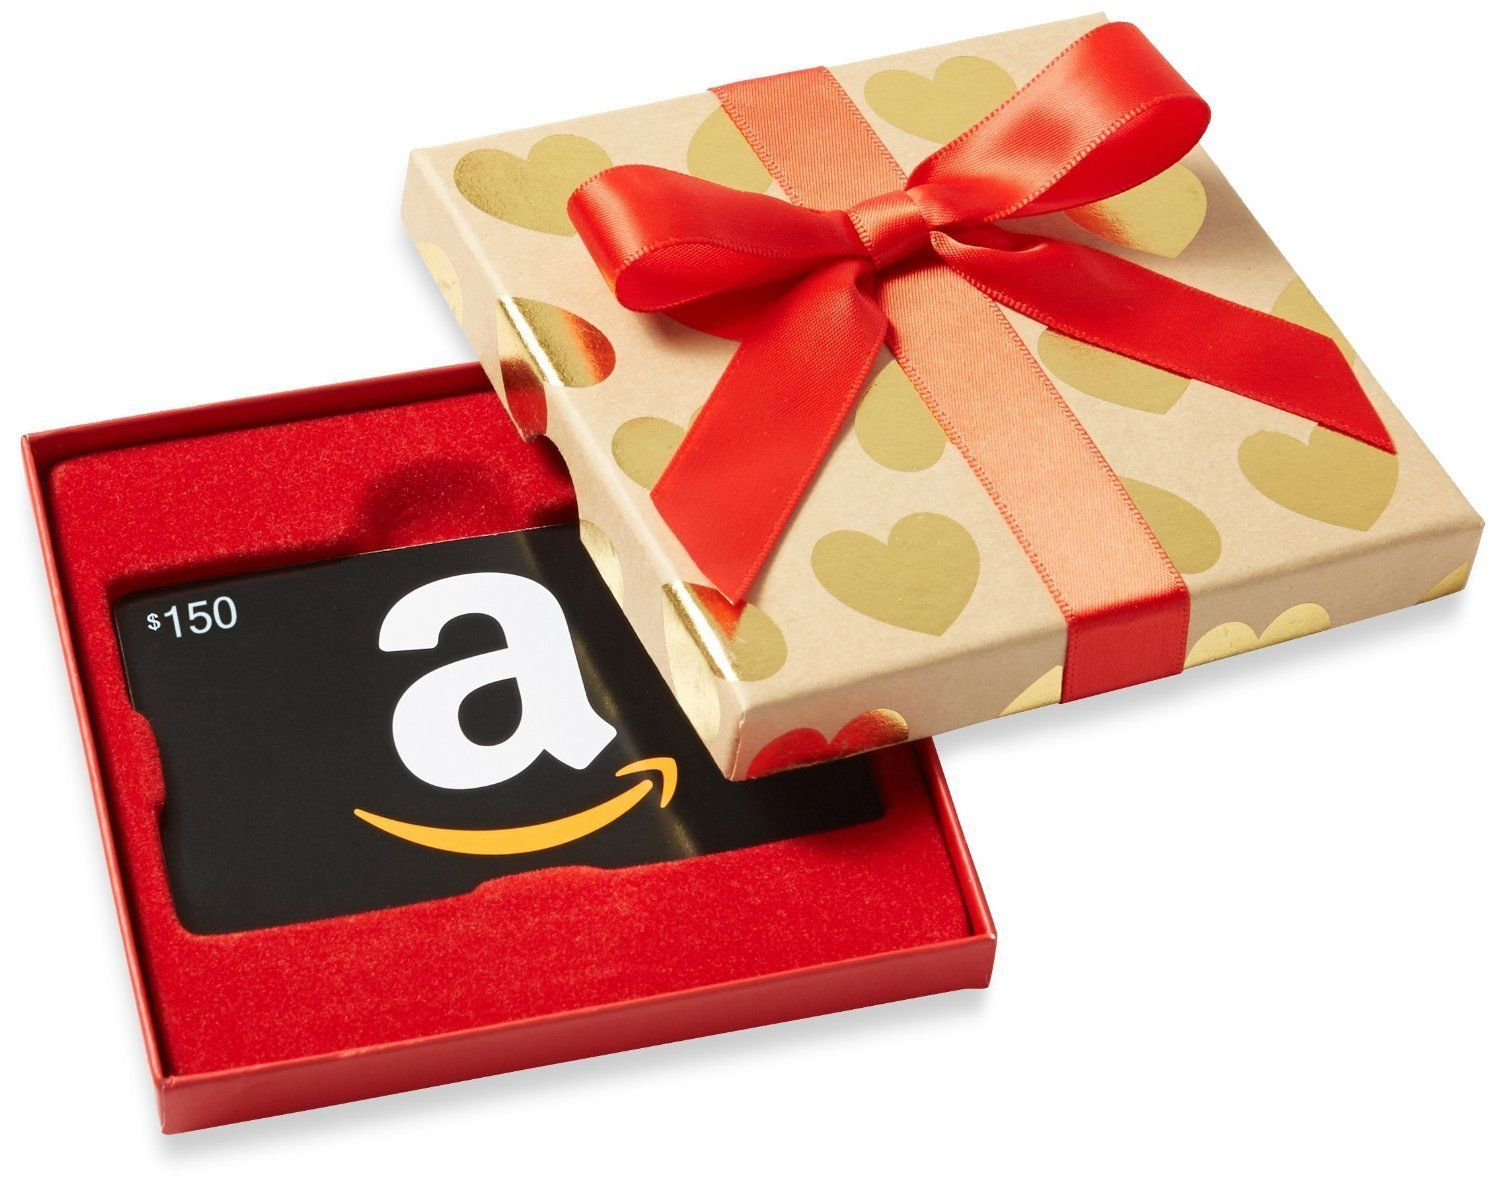 150 Amazon Gift Card Nice Gift Box Never Expires Ultra Fast 1